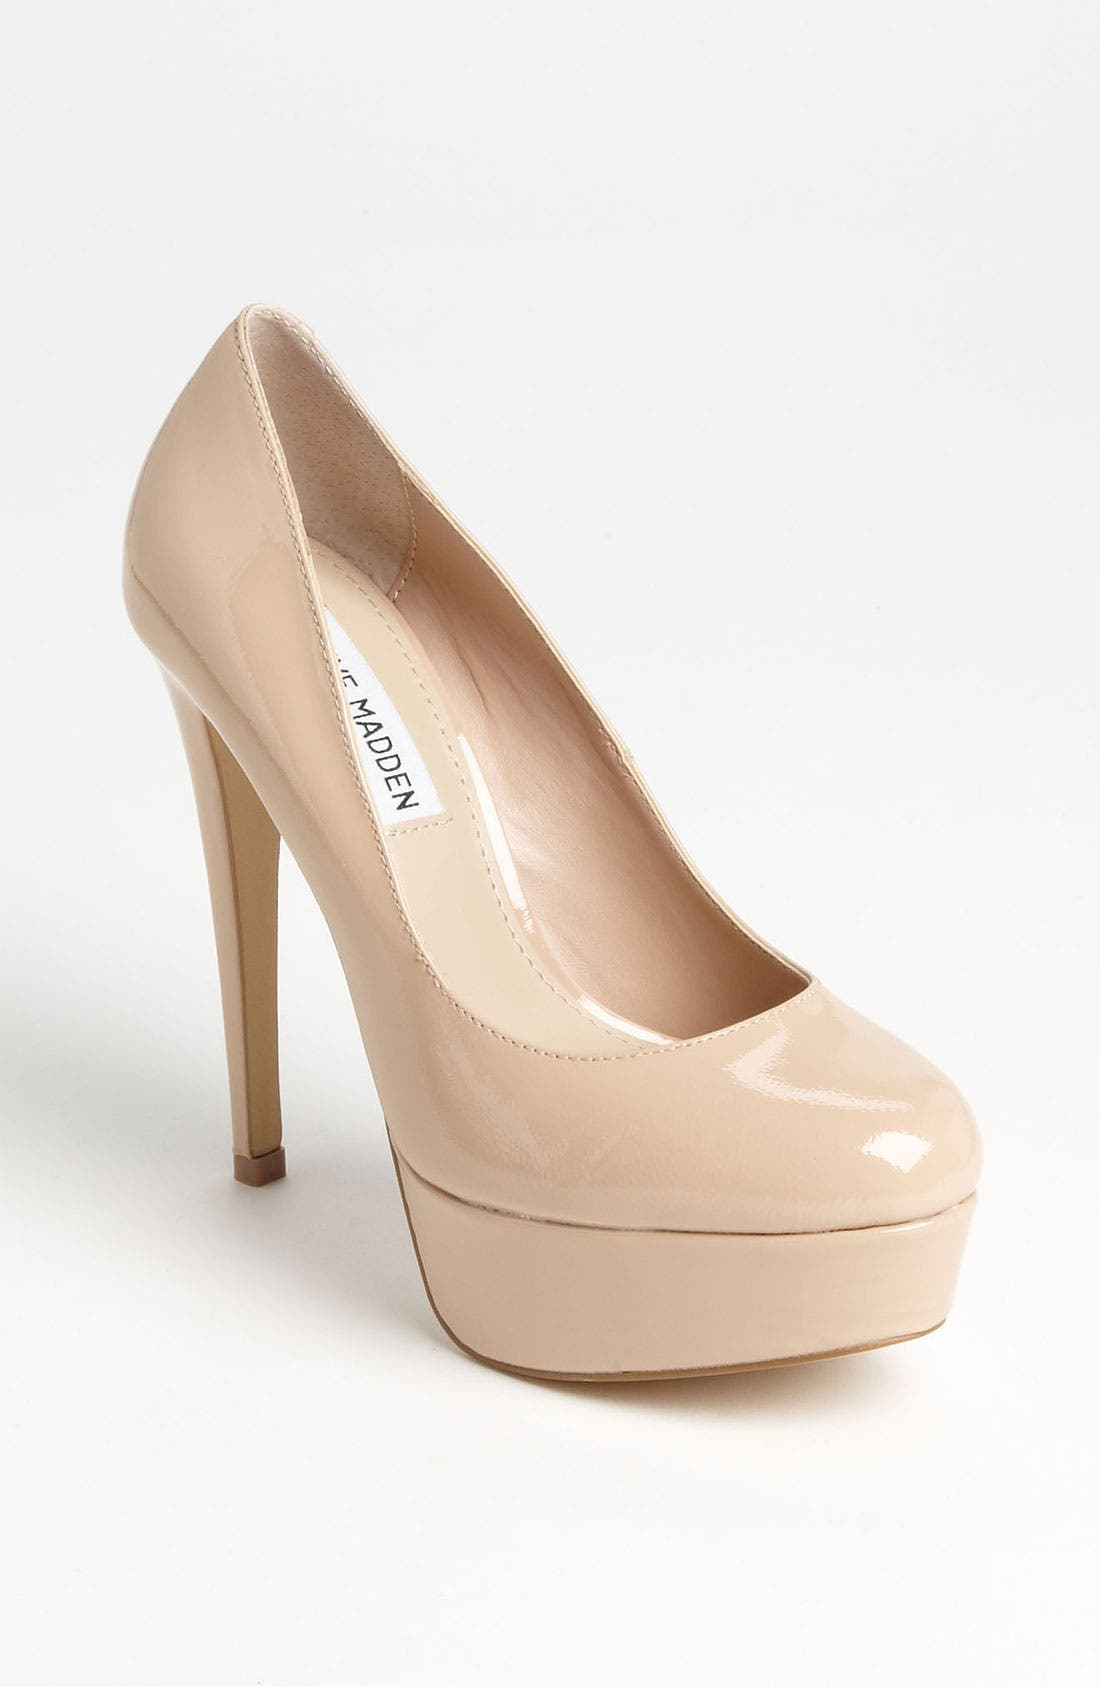 Alternate Image 1 Selected - Steve Madden 'Demandd' Pump